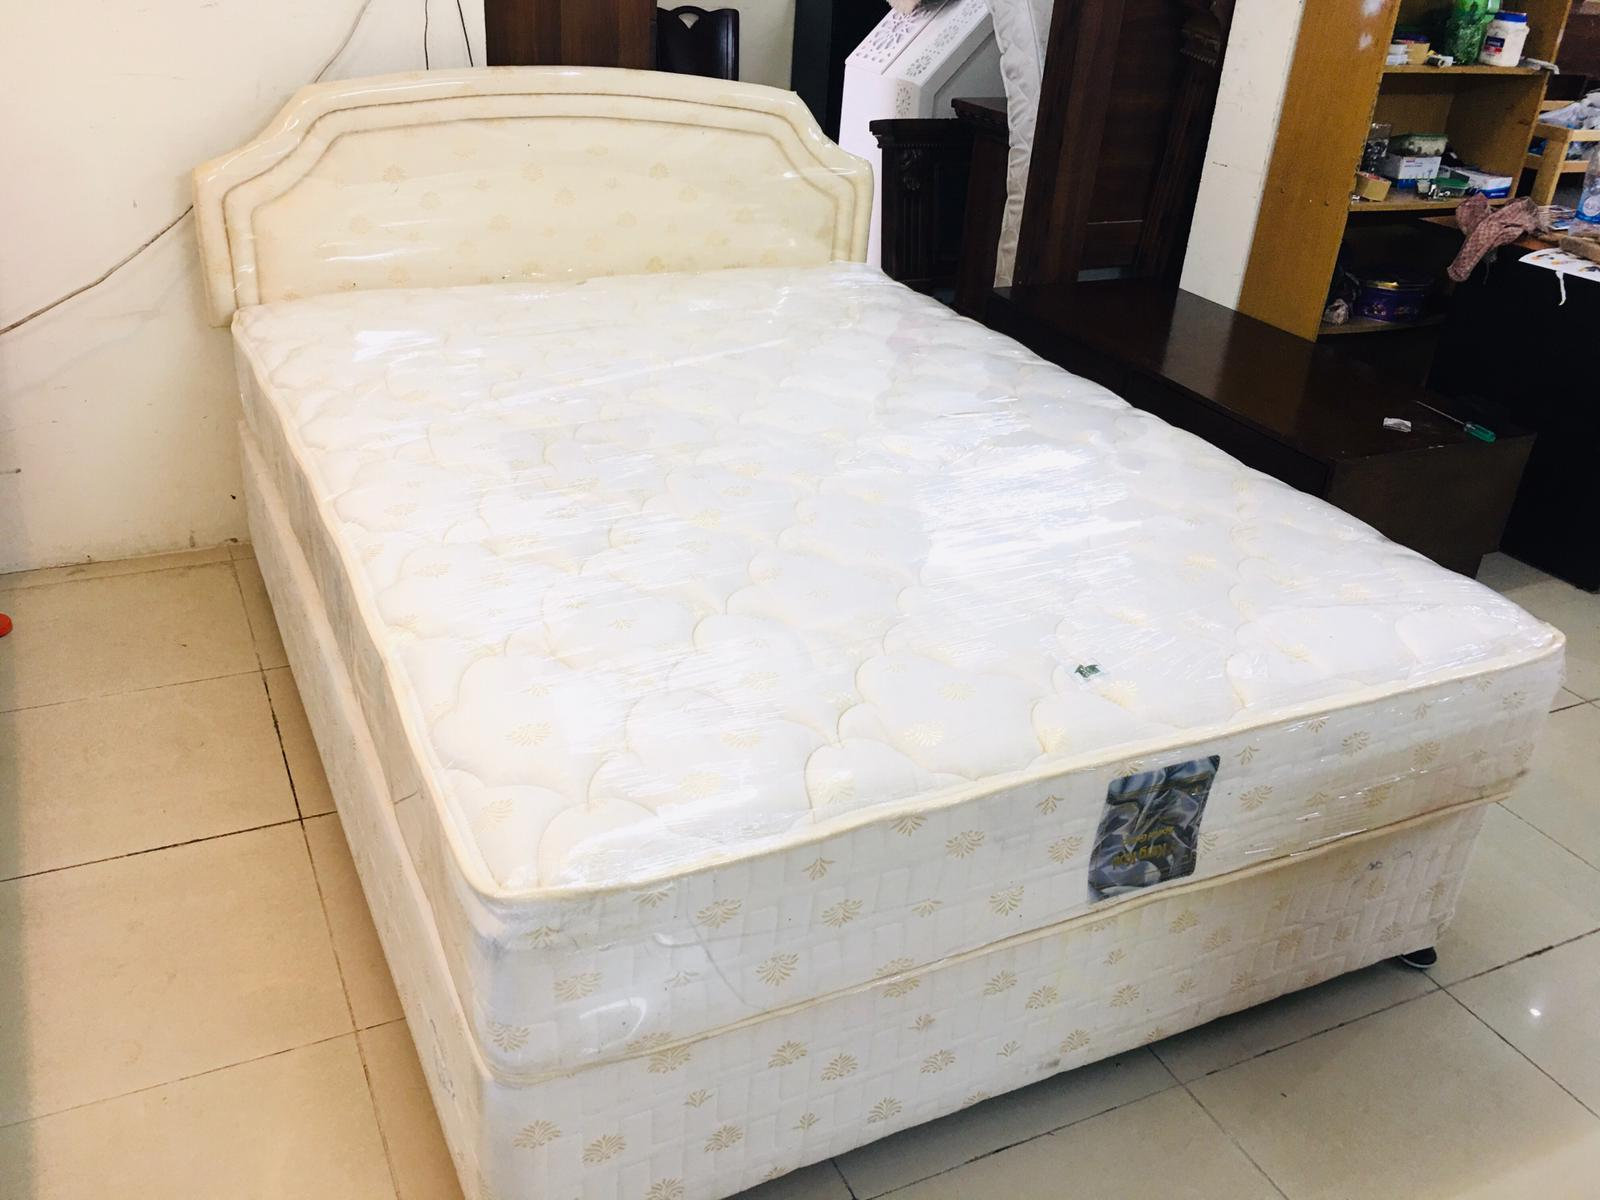 For Sell used Villa Furniture items